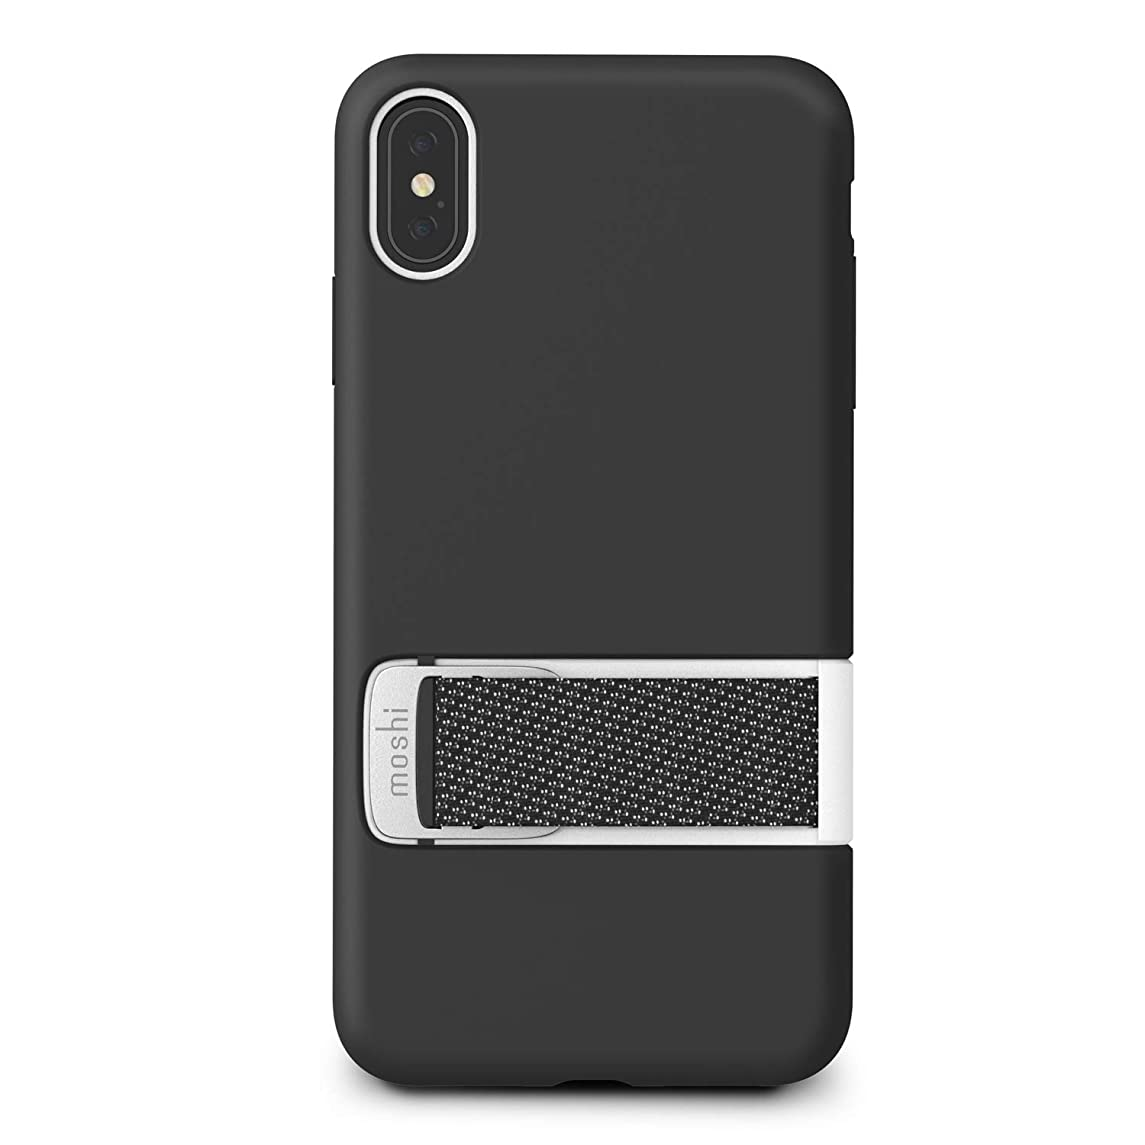 Moshi Capto Case for iPhone Xs MAX with Kickstand Slim Loop Military-Grade Drop Protection Wireless Charging, Black